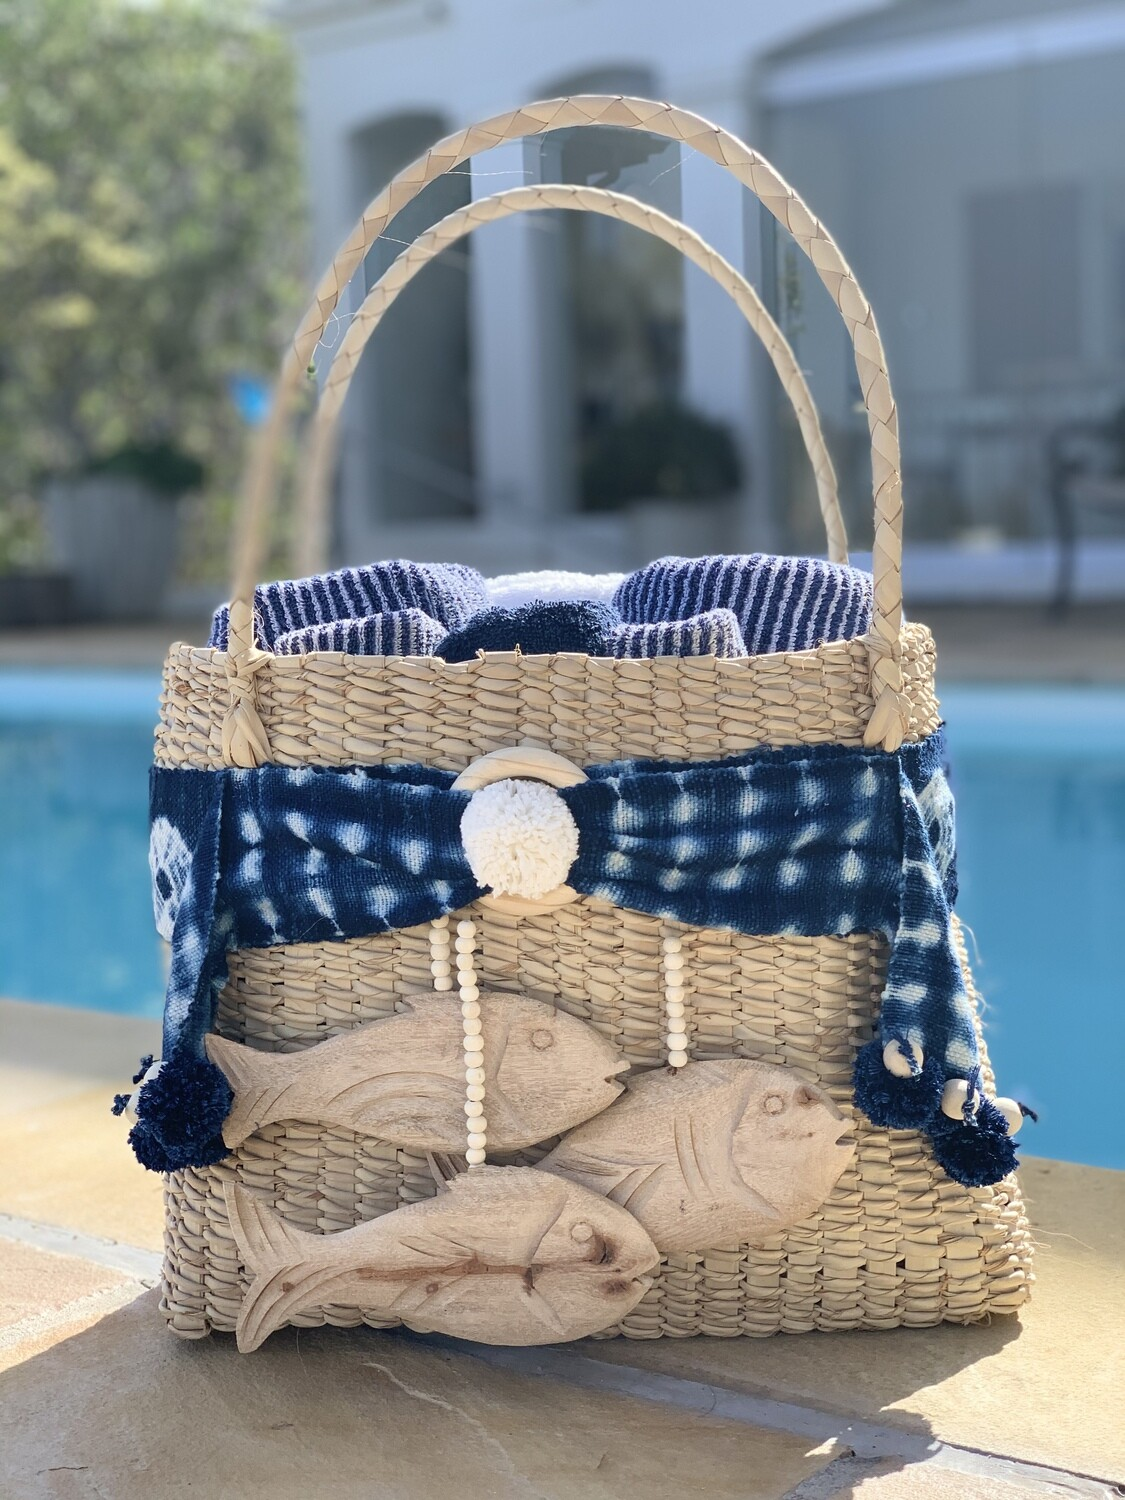 Decor/Gootchi Basket